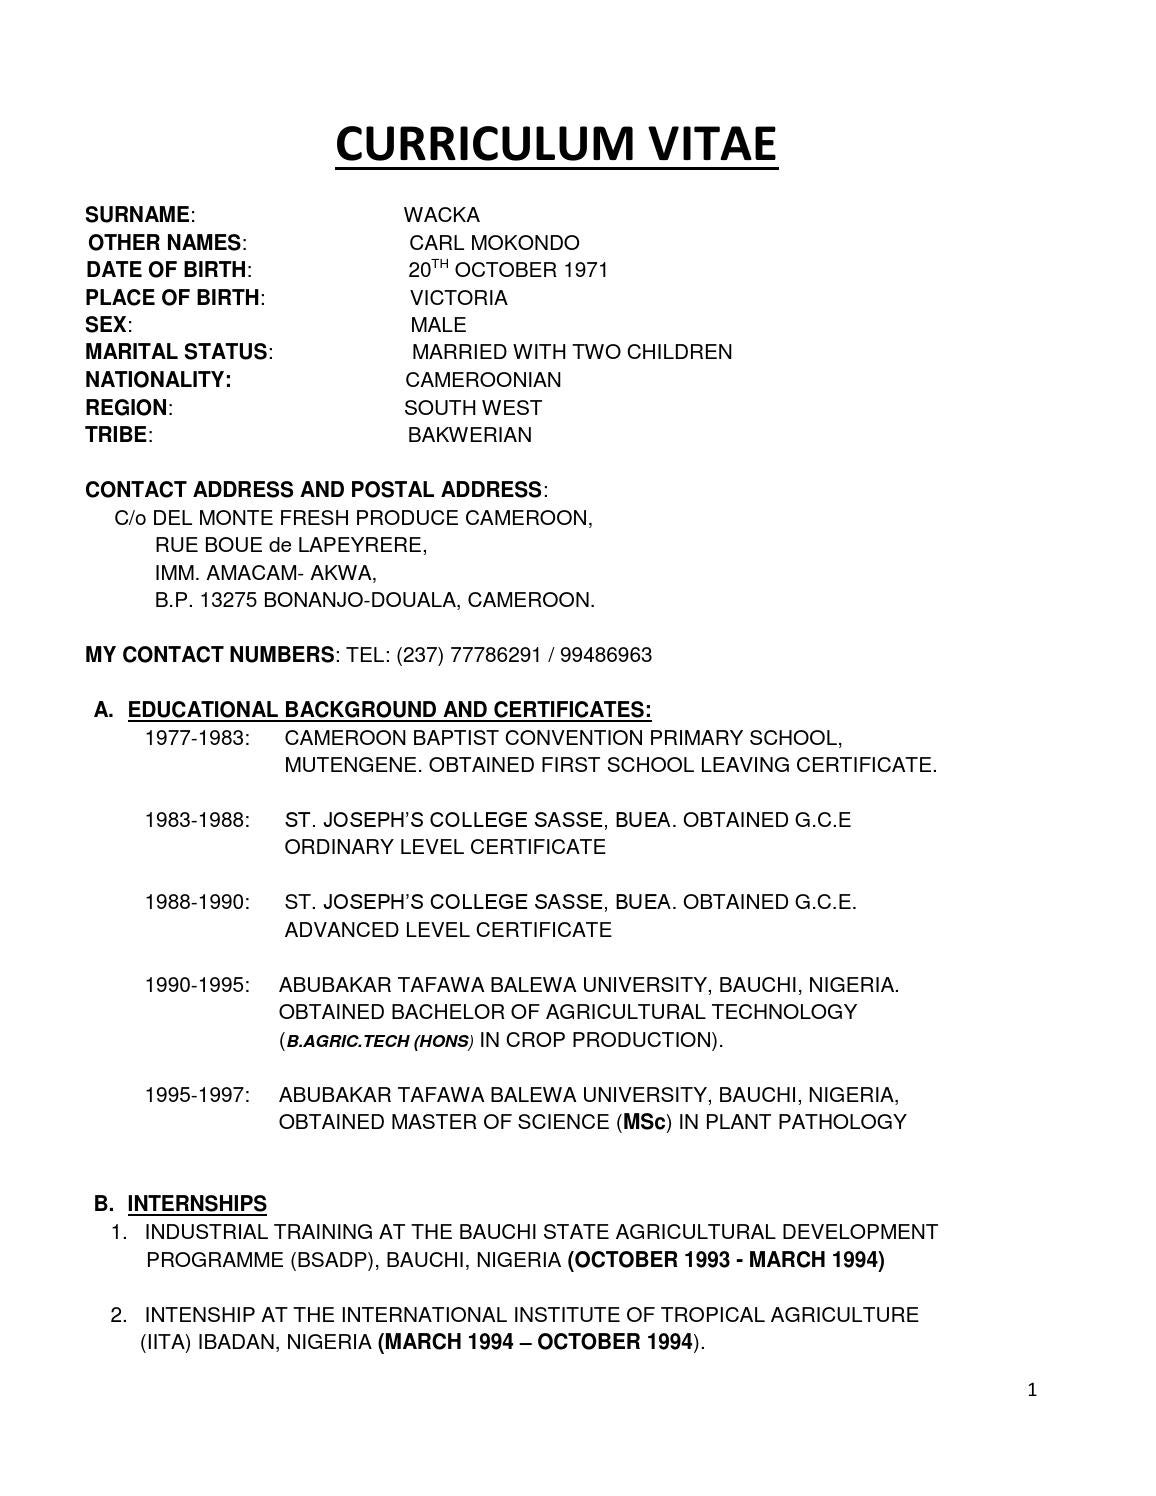 my curriculum vitae pdf revised by wacka carl